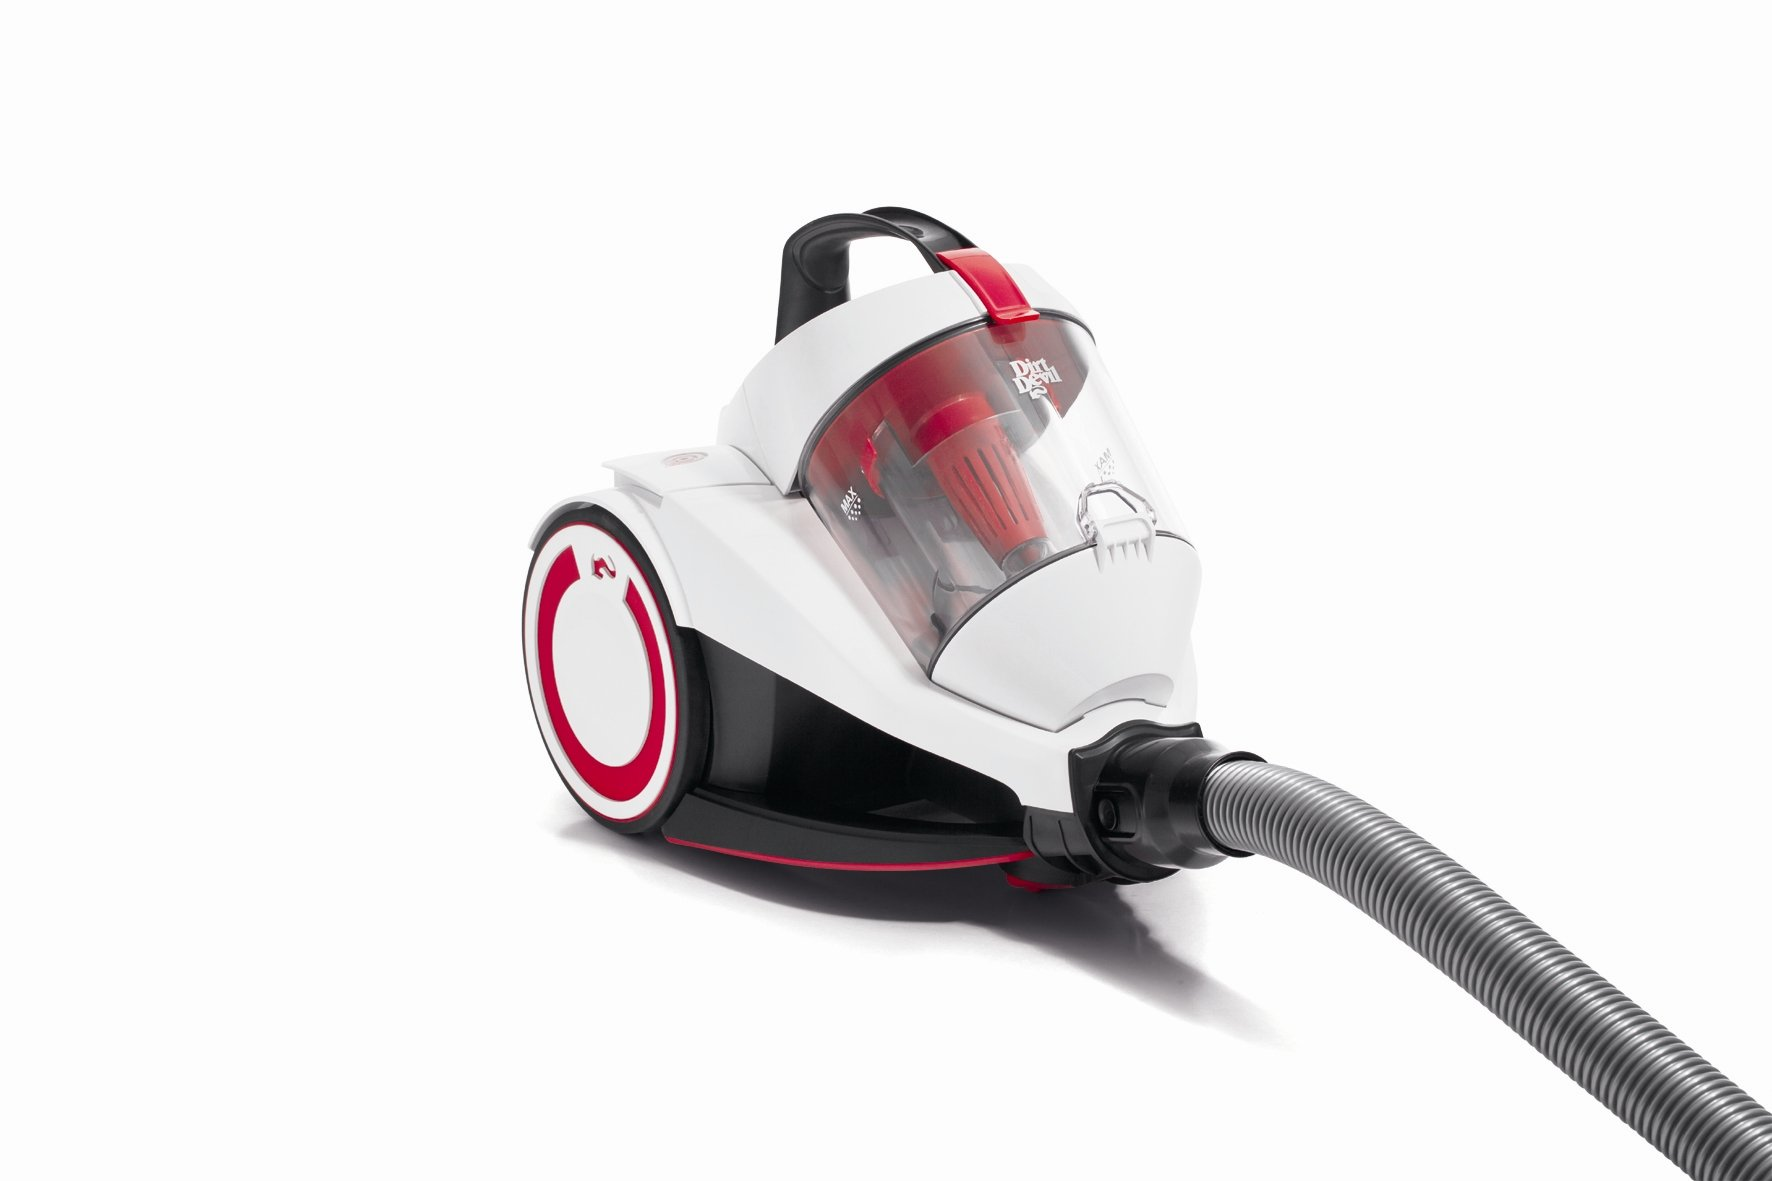 Dirt Devil Rebel 20 - Aspirador sin bolsa 1800 W, compacto, color blanco: Amazon.es: Hogar